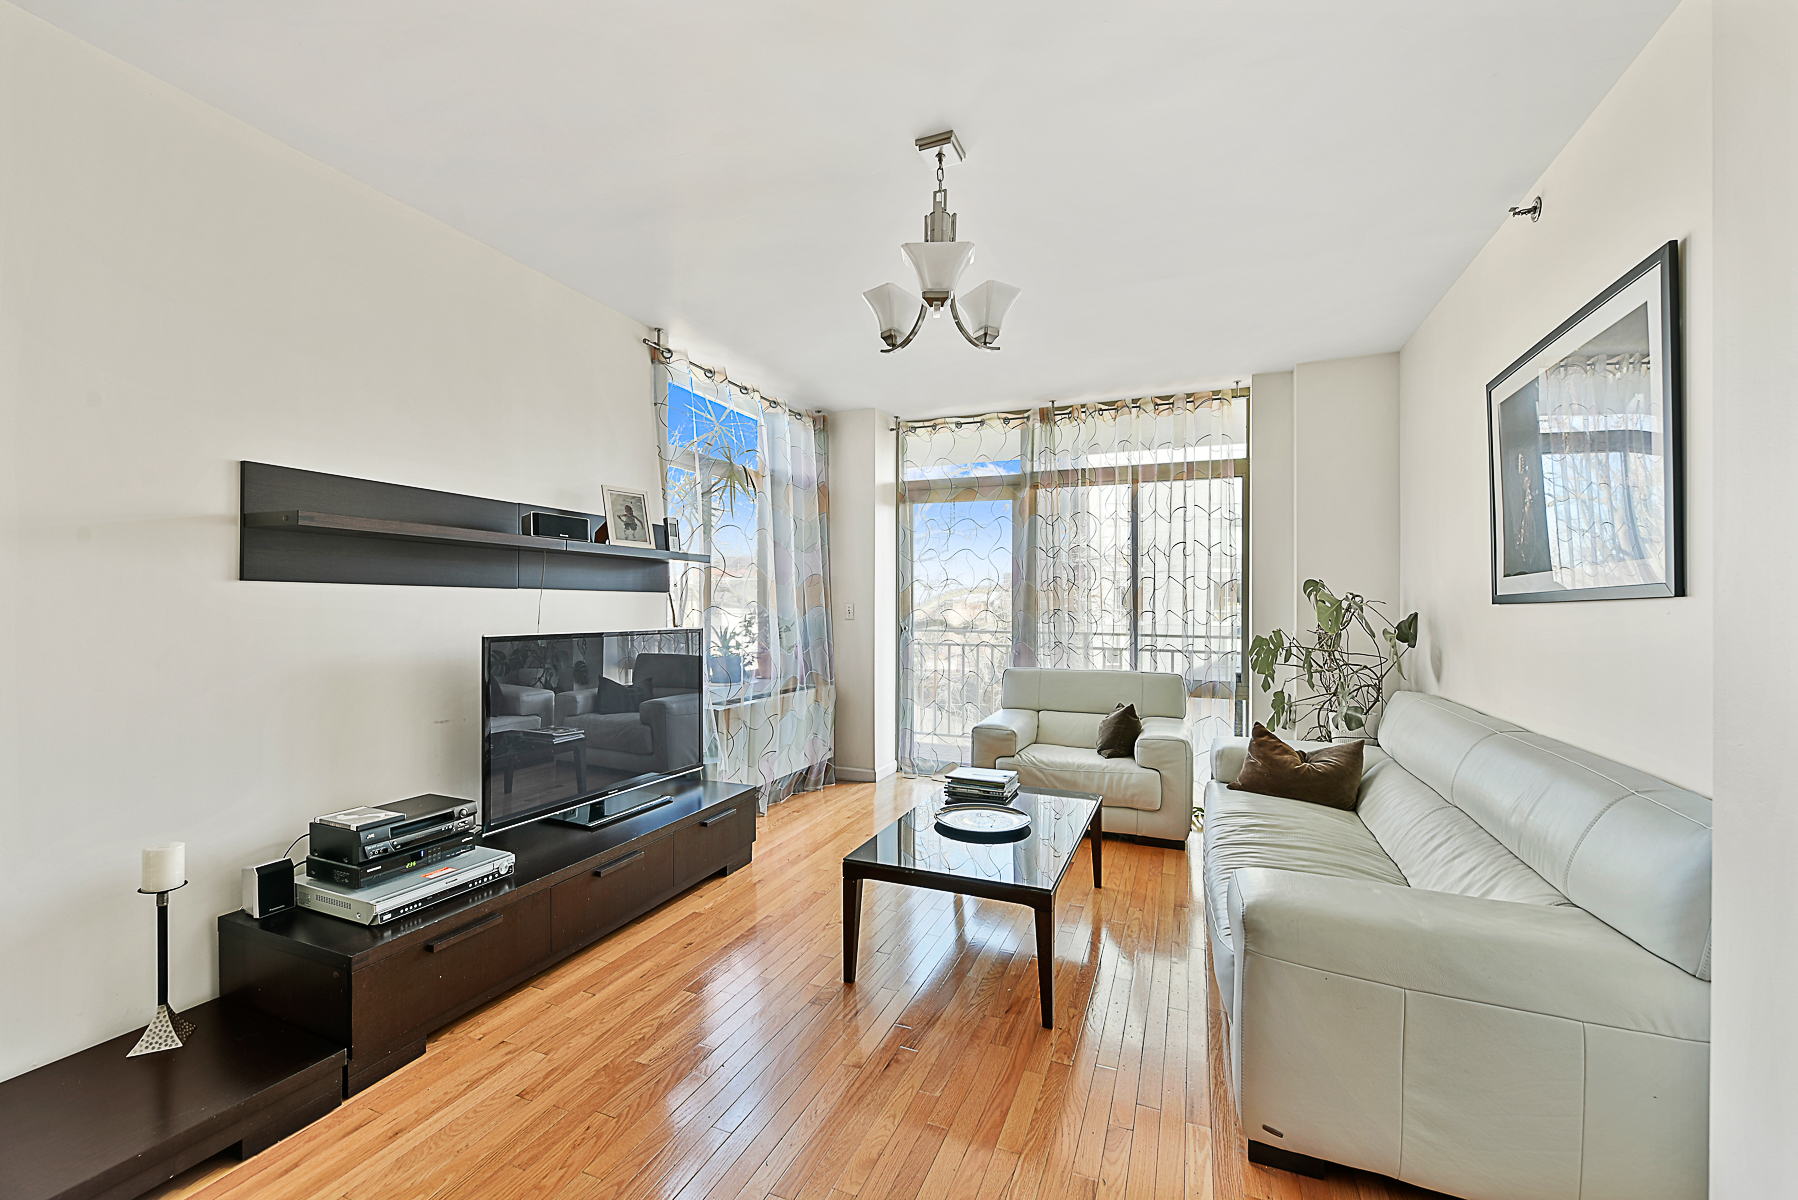 Condominium for Sale at Sun-filled 3 BR Condo with Terrace 3625 Oxford Avenue 4A Riverdale, New York, 10463 United States